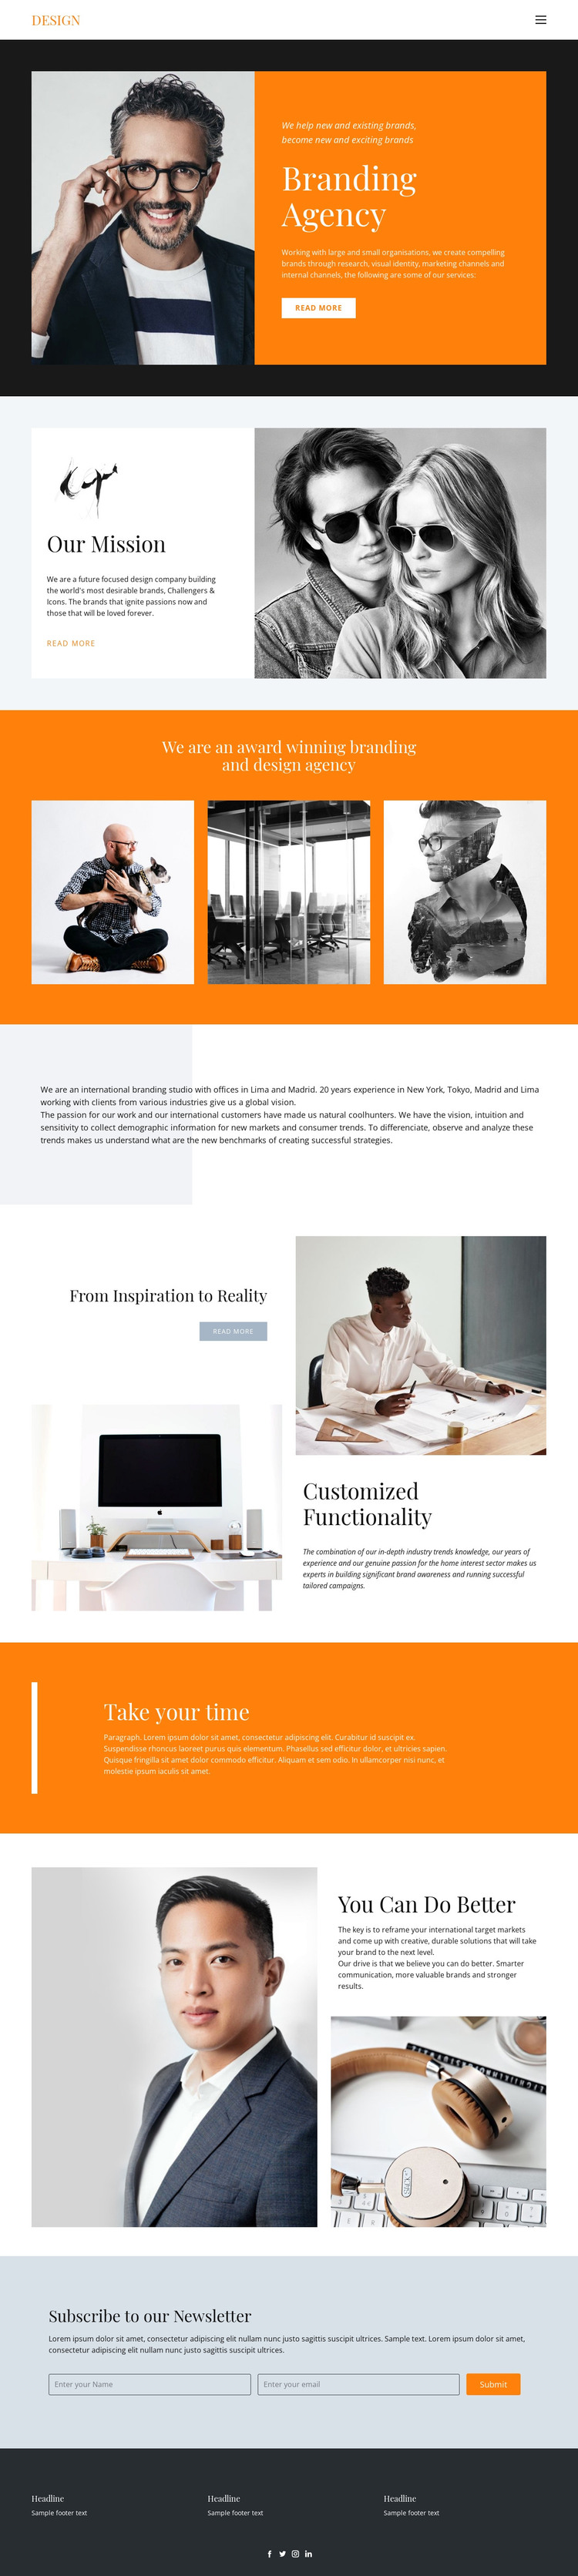 Desired results in business WordPress Theme